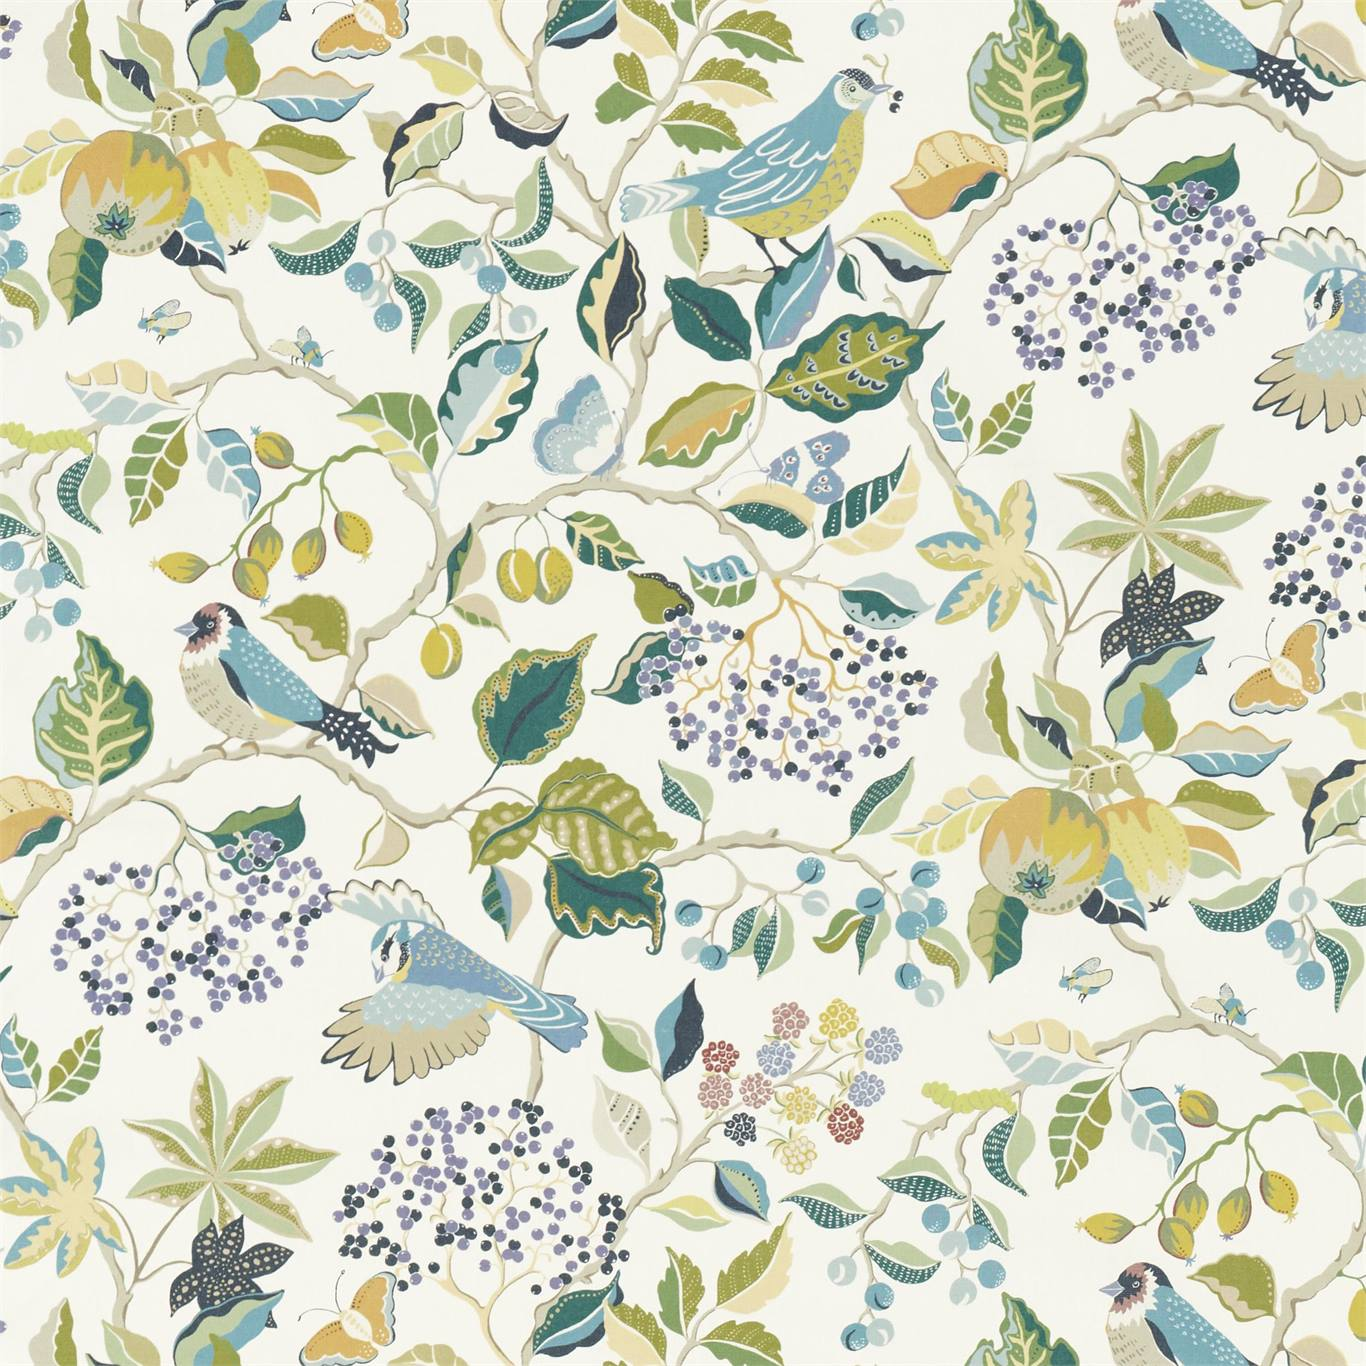 DNTF226728 Collection - National Trust Fabric